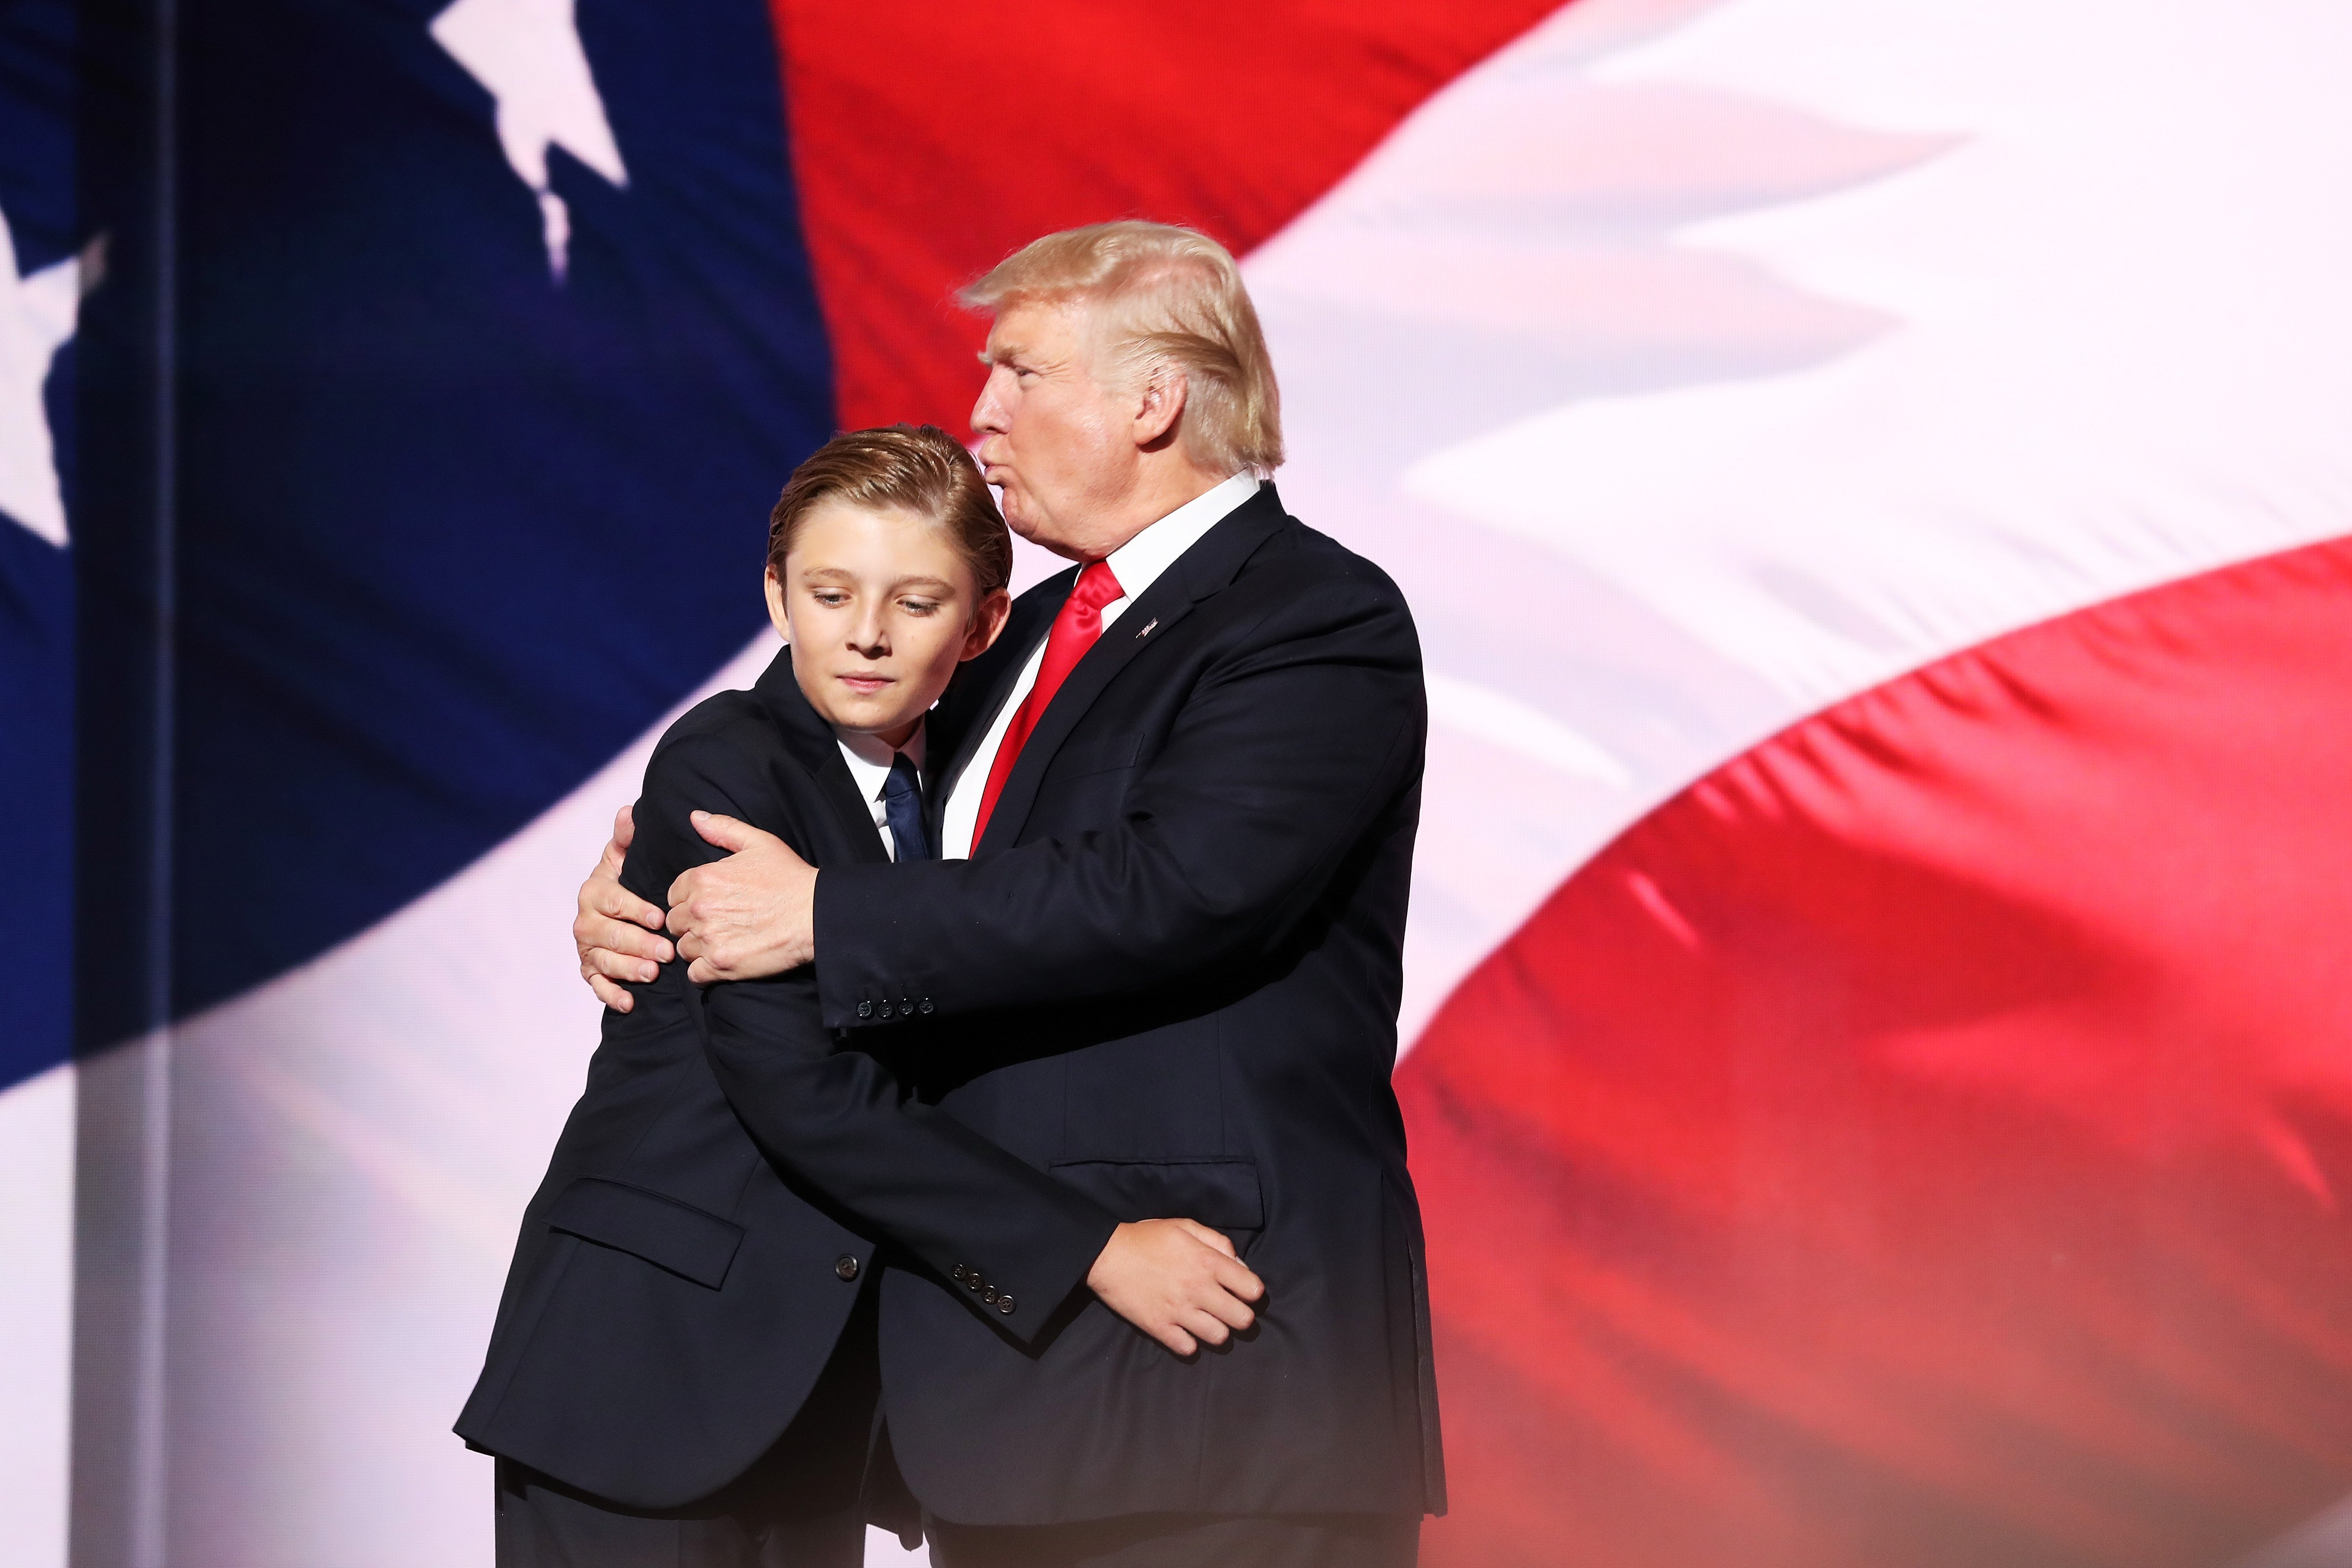 Donald embraces his son Barron Trump after he delivered his speech on the fourth day of the Republican National Convention on July 21, 2016 in Cleveland, Ohio | Photo: GettyImages